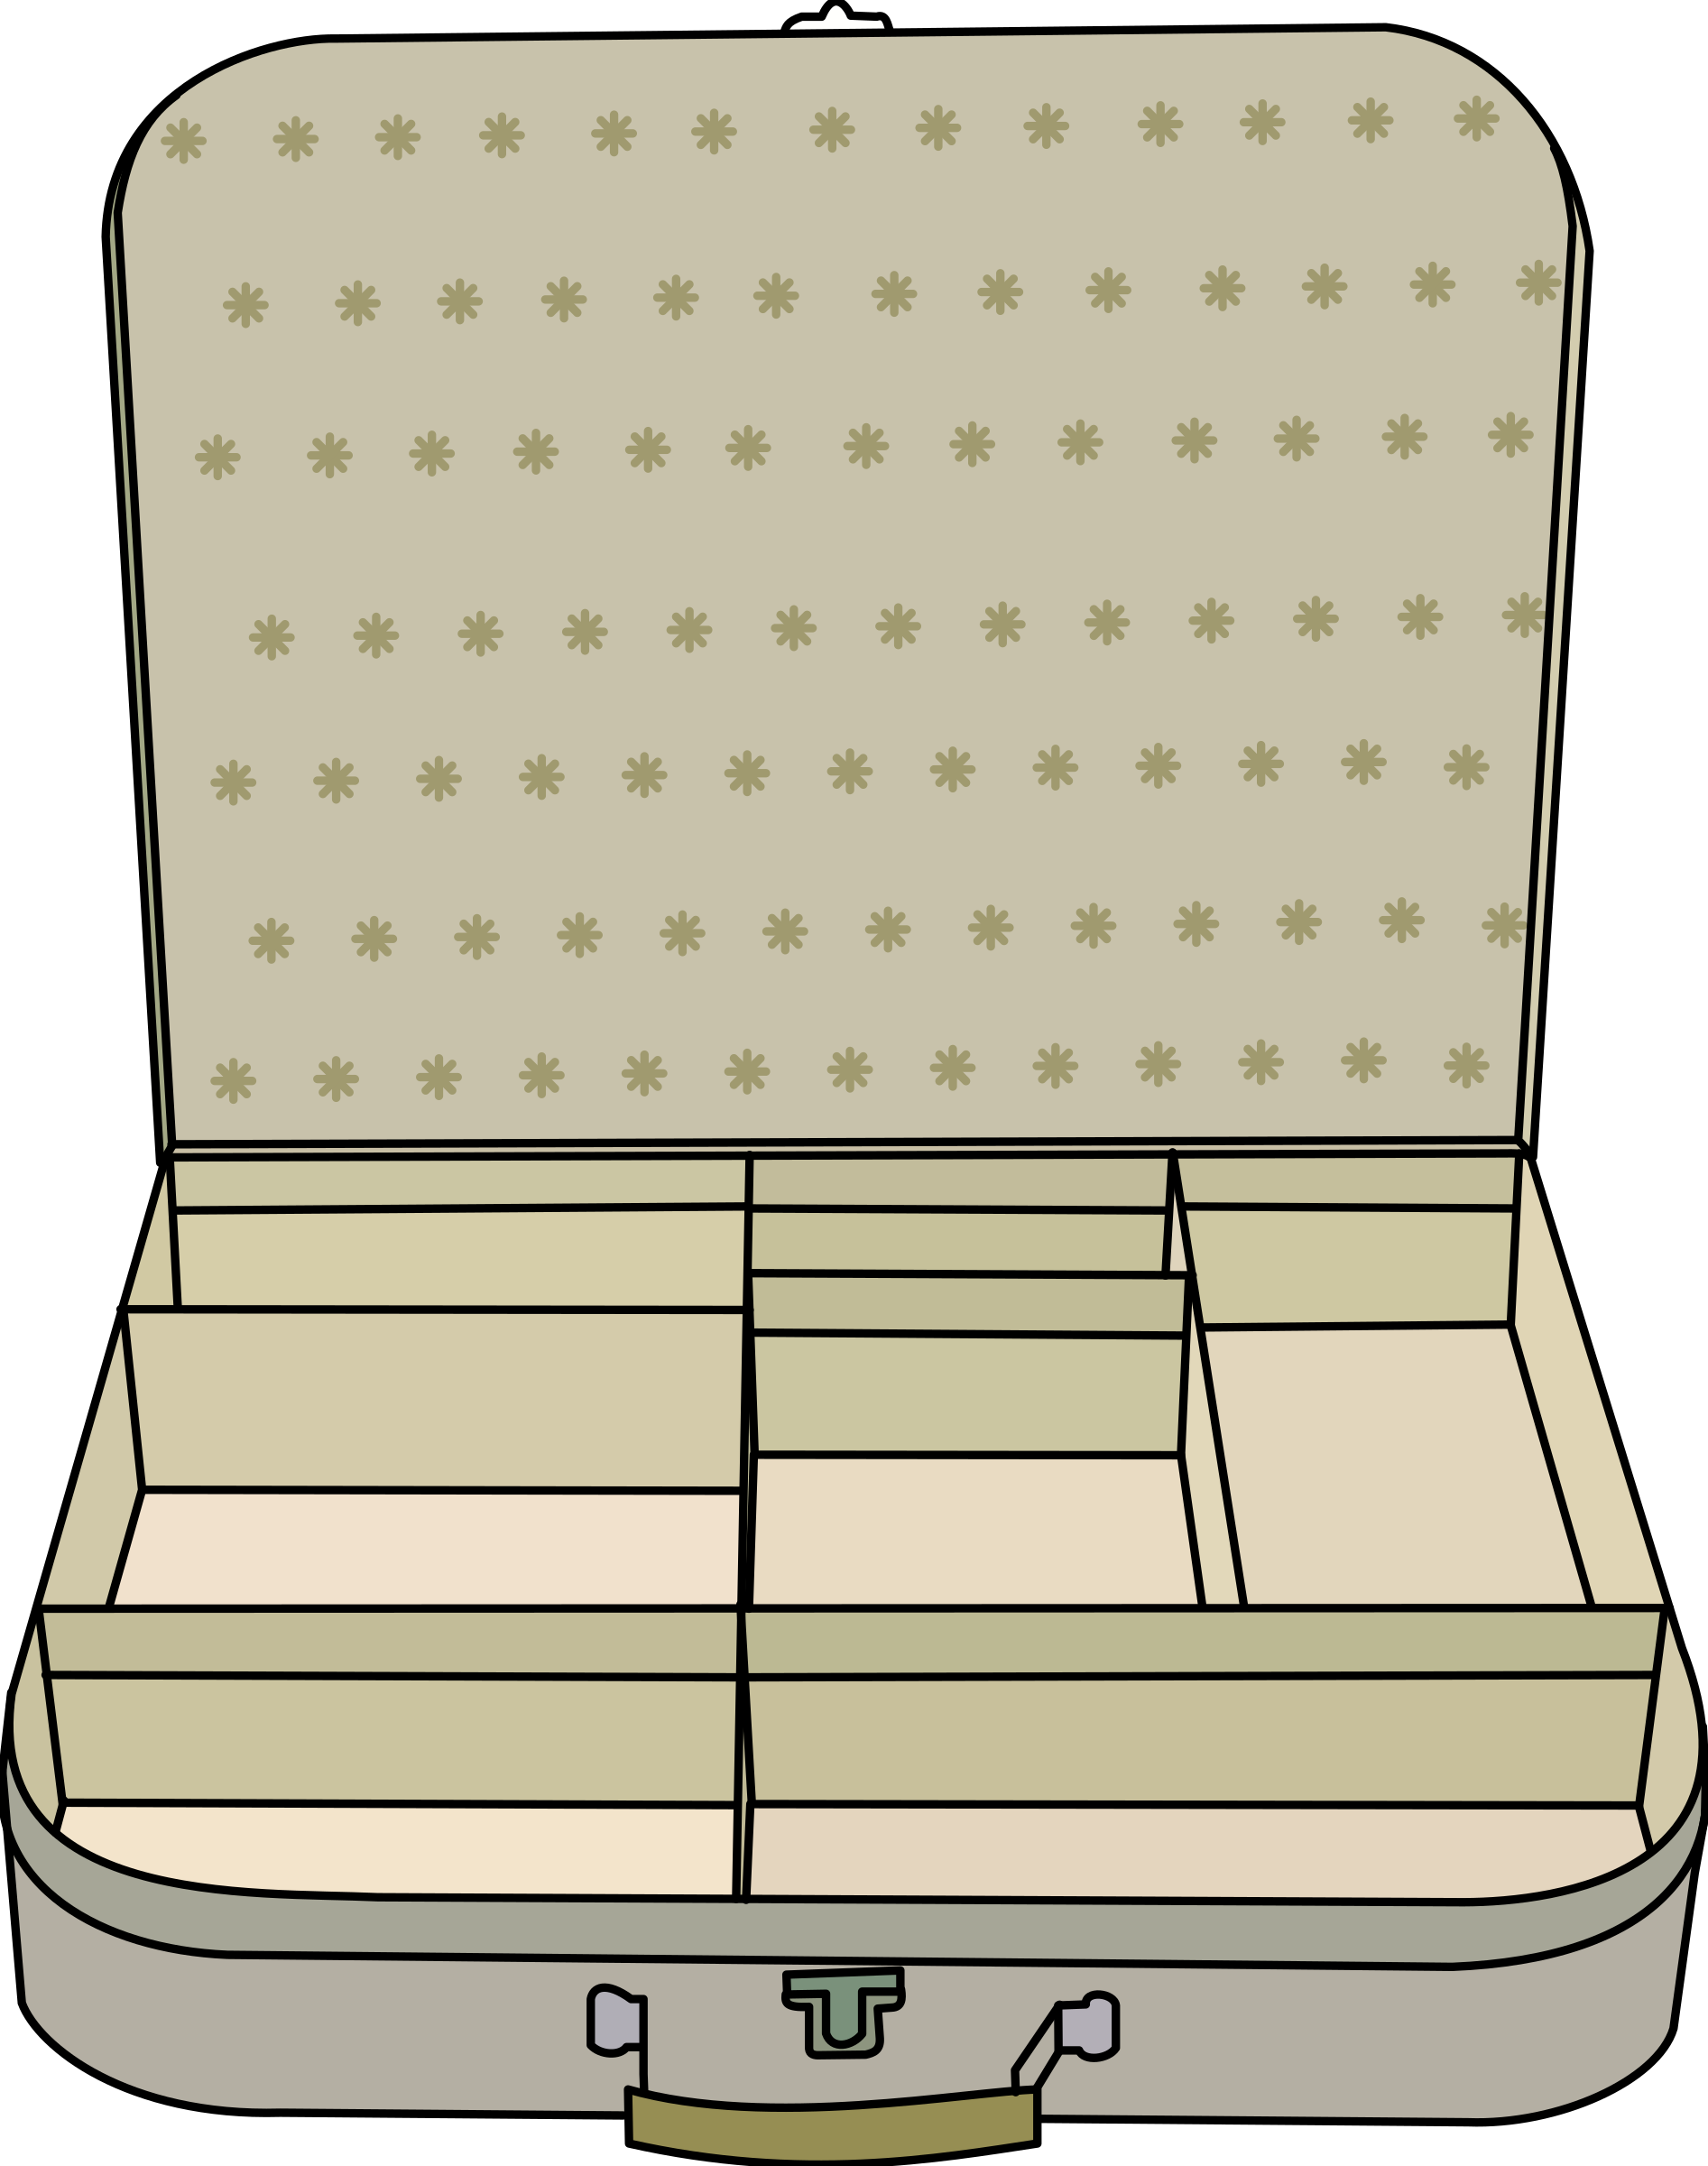 Luggage clipart messy. Open suitcase drawing at